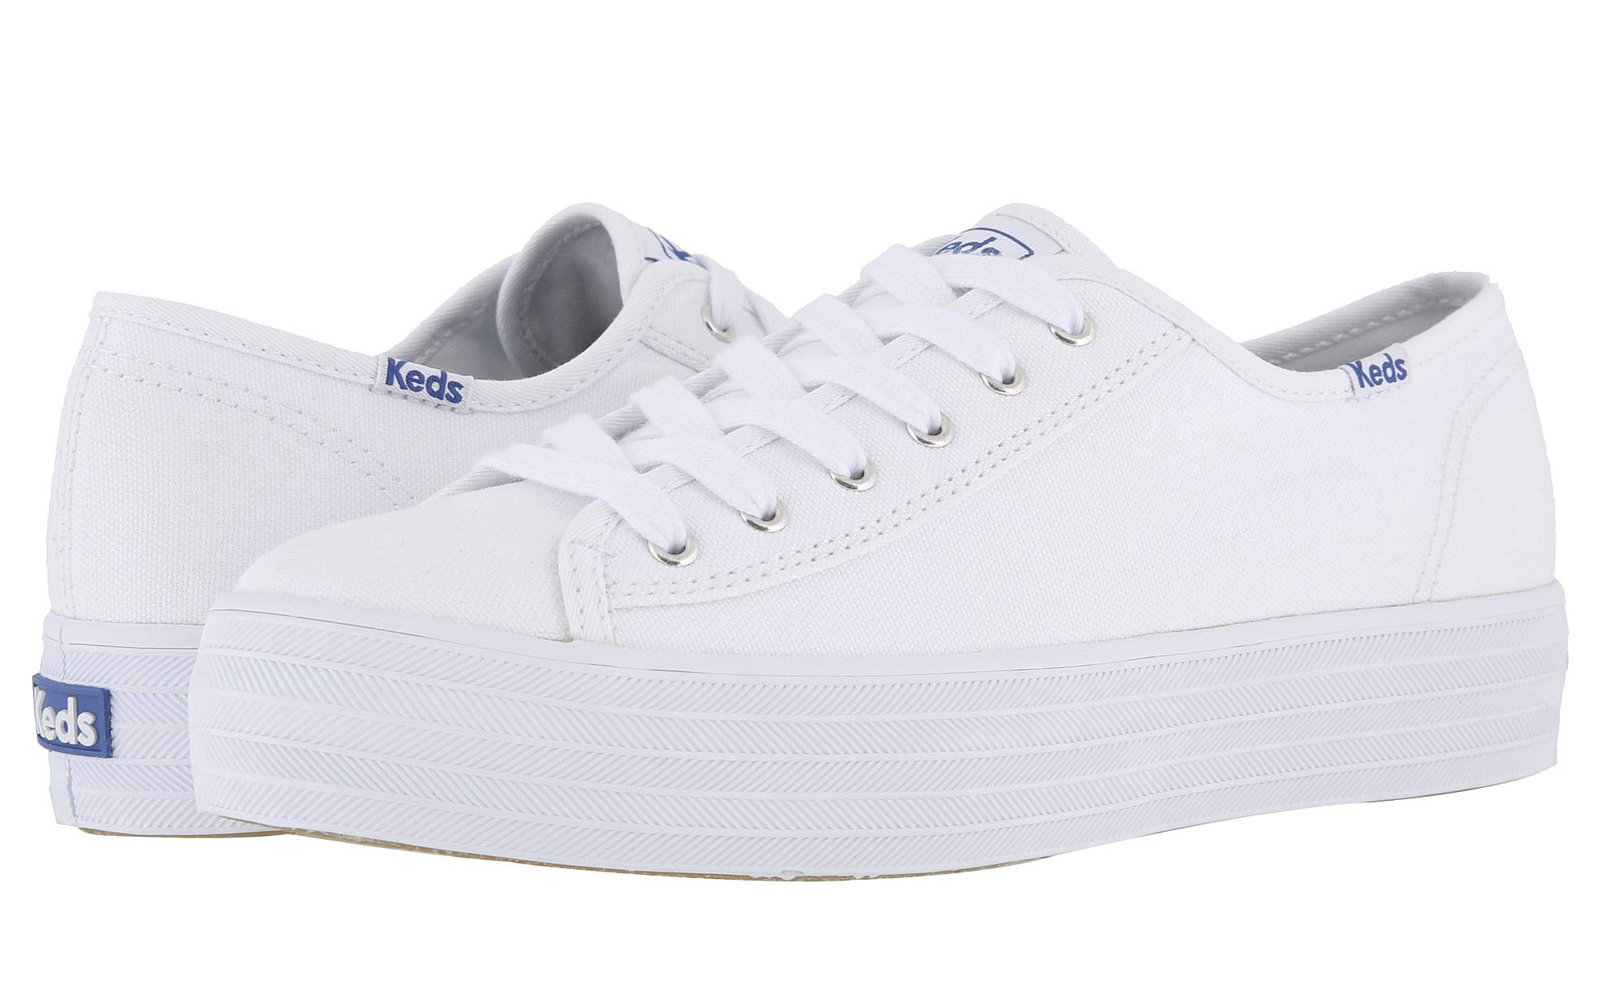 6962b95e55154 Keds Triple Kick Canvas. Best White Sneakers for Women